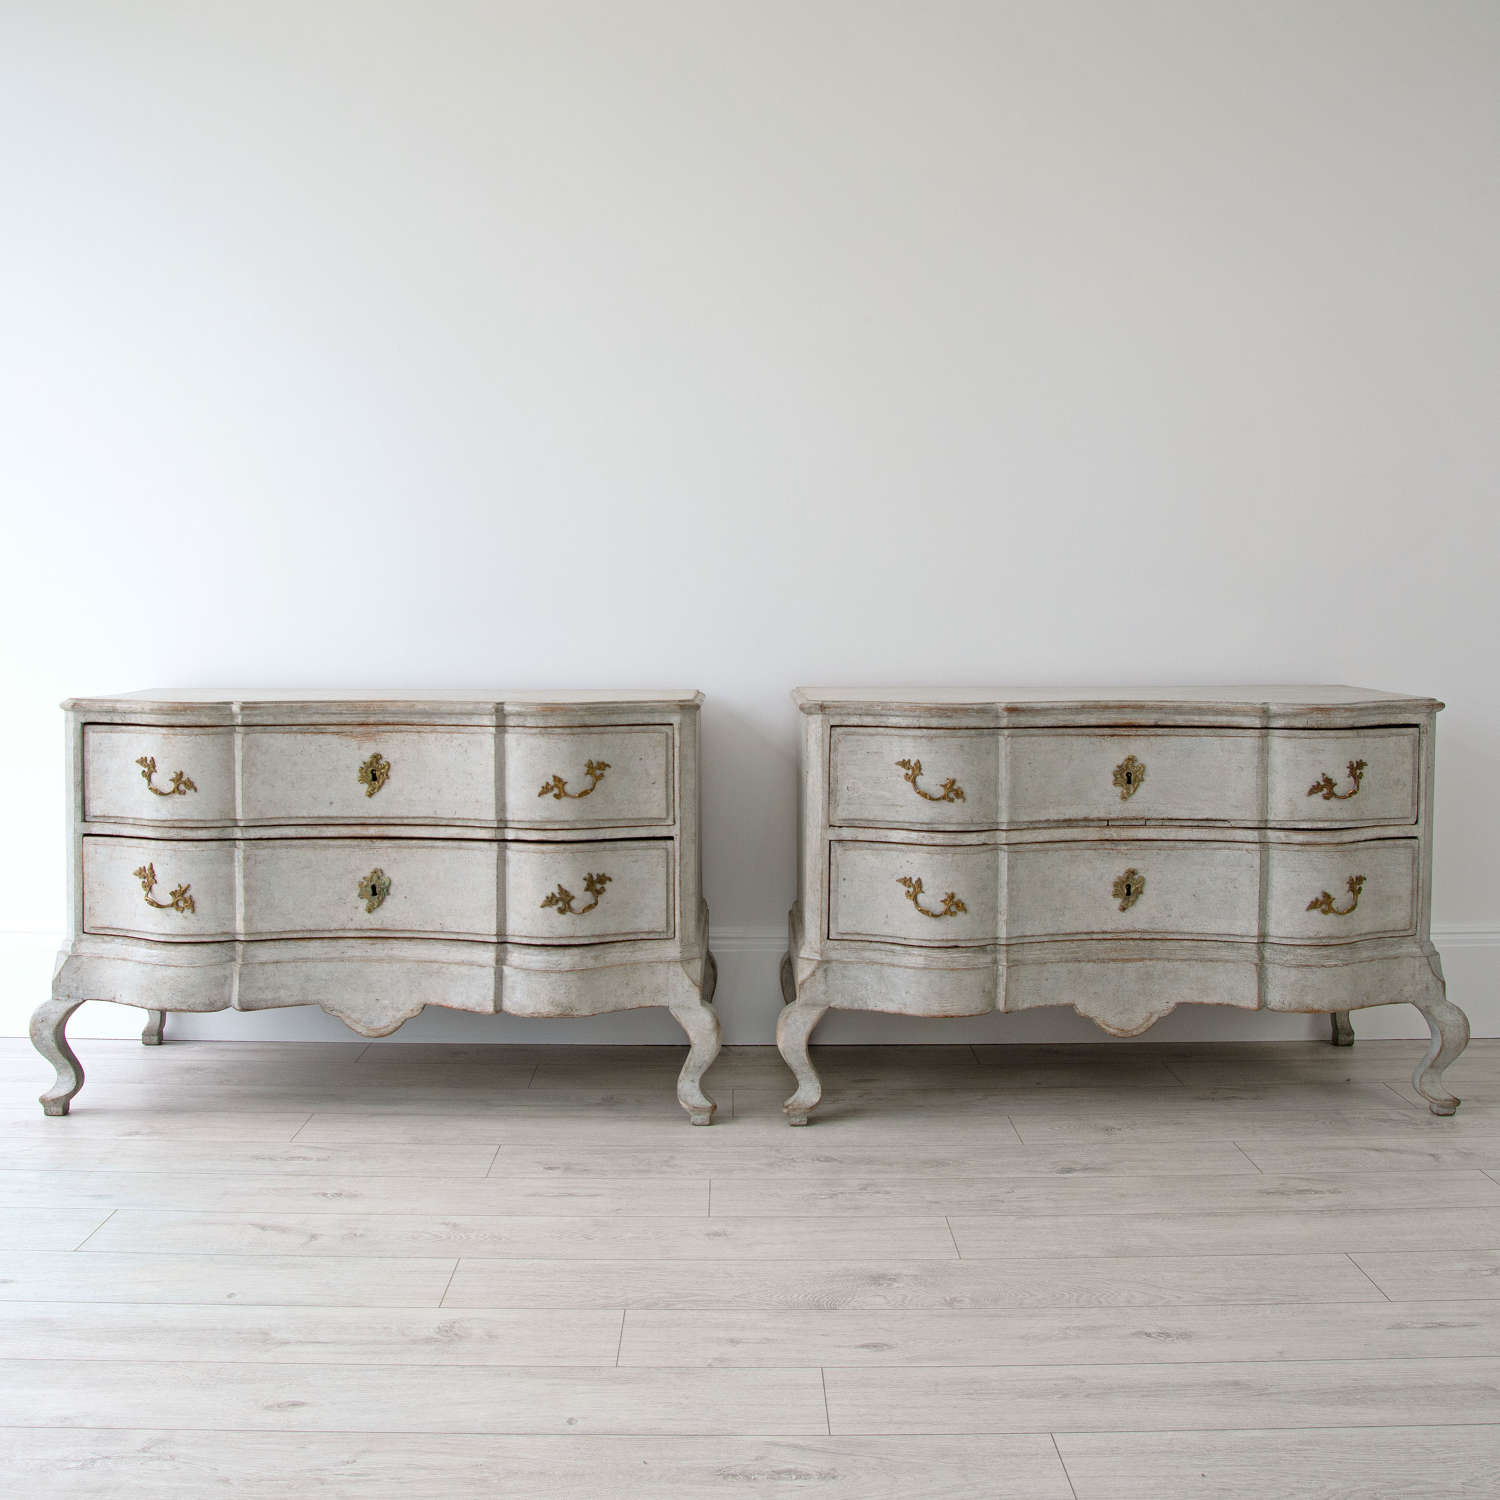 PAIR OF SERPENTINE CHESTS